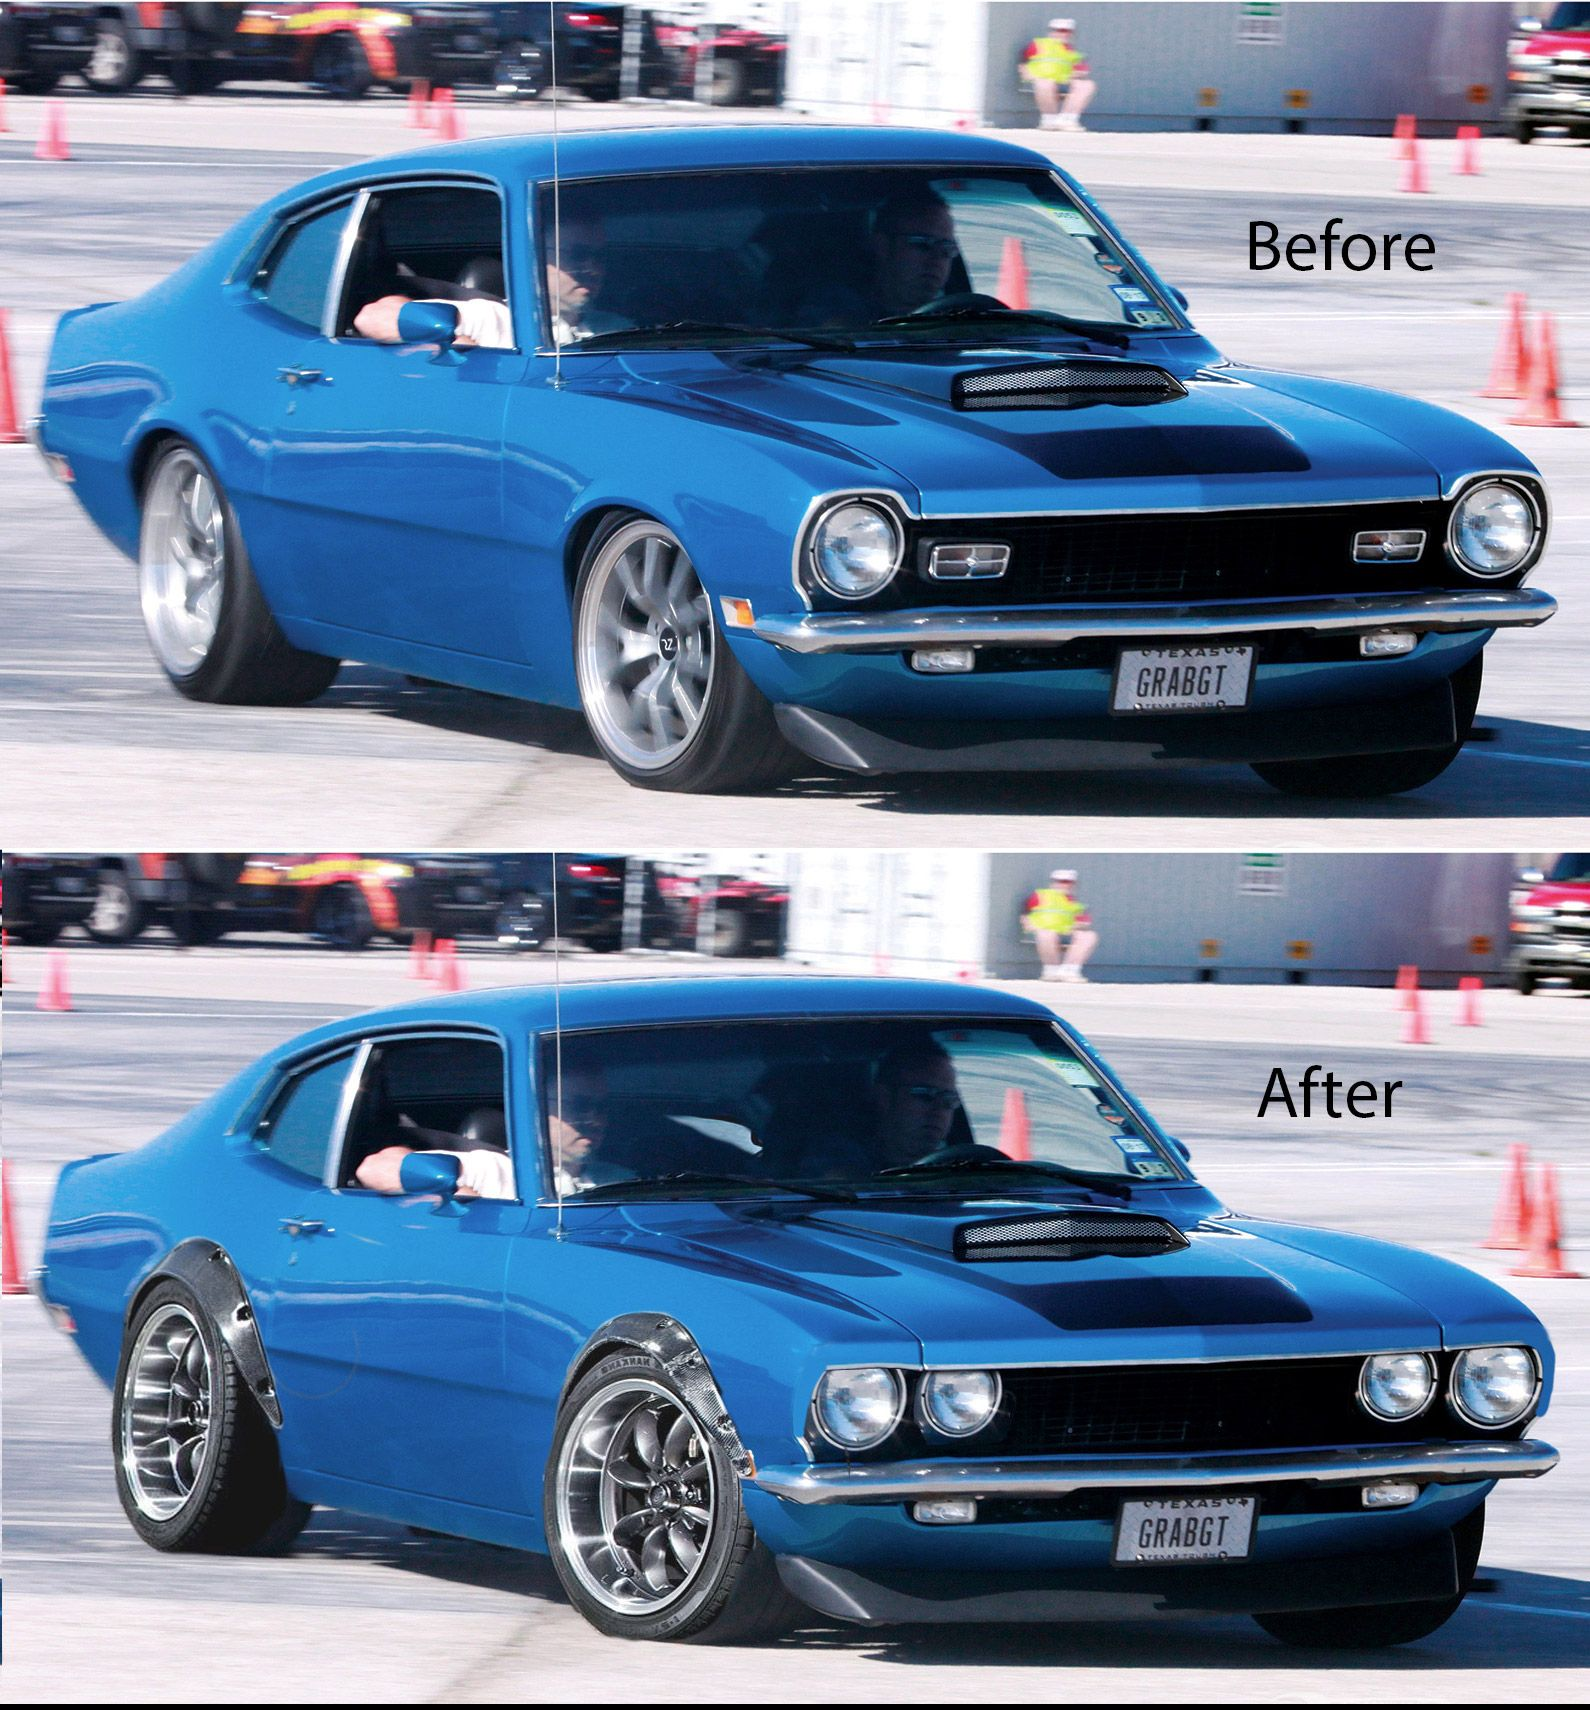 Photoshop Prototype Of A Build I Will Make Ford Maverick